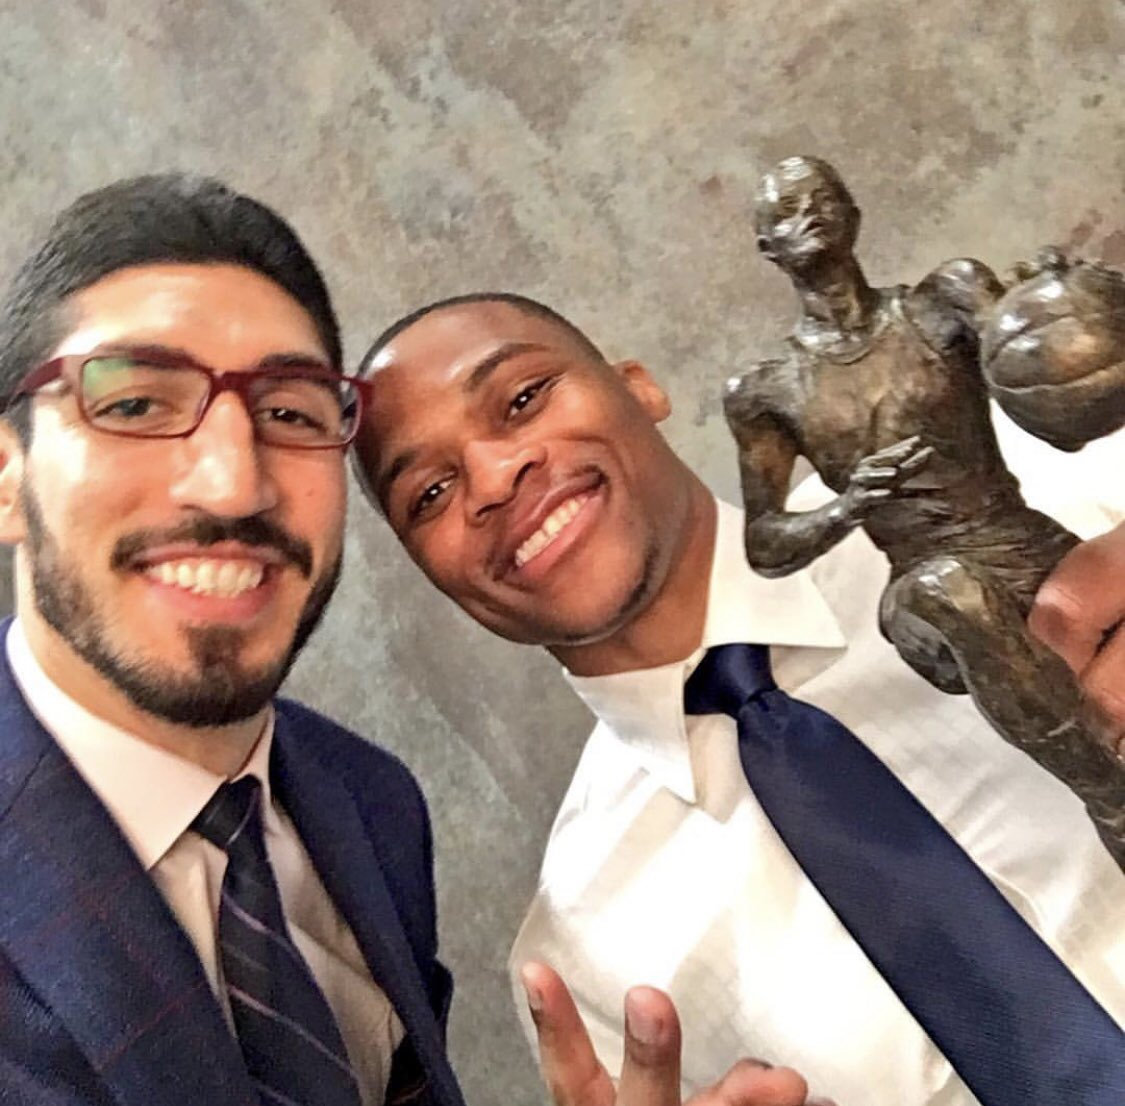 RT @Enes_Kanter: Happy birthday to my brother @russwest44 ???? https://t.co/CcdeUtMDOz